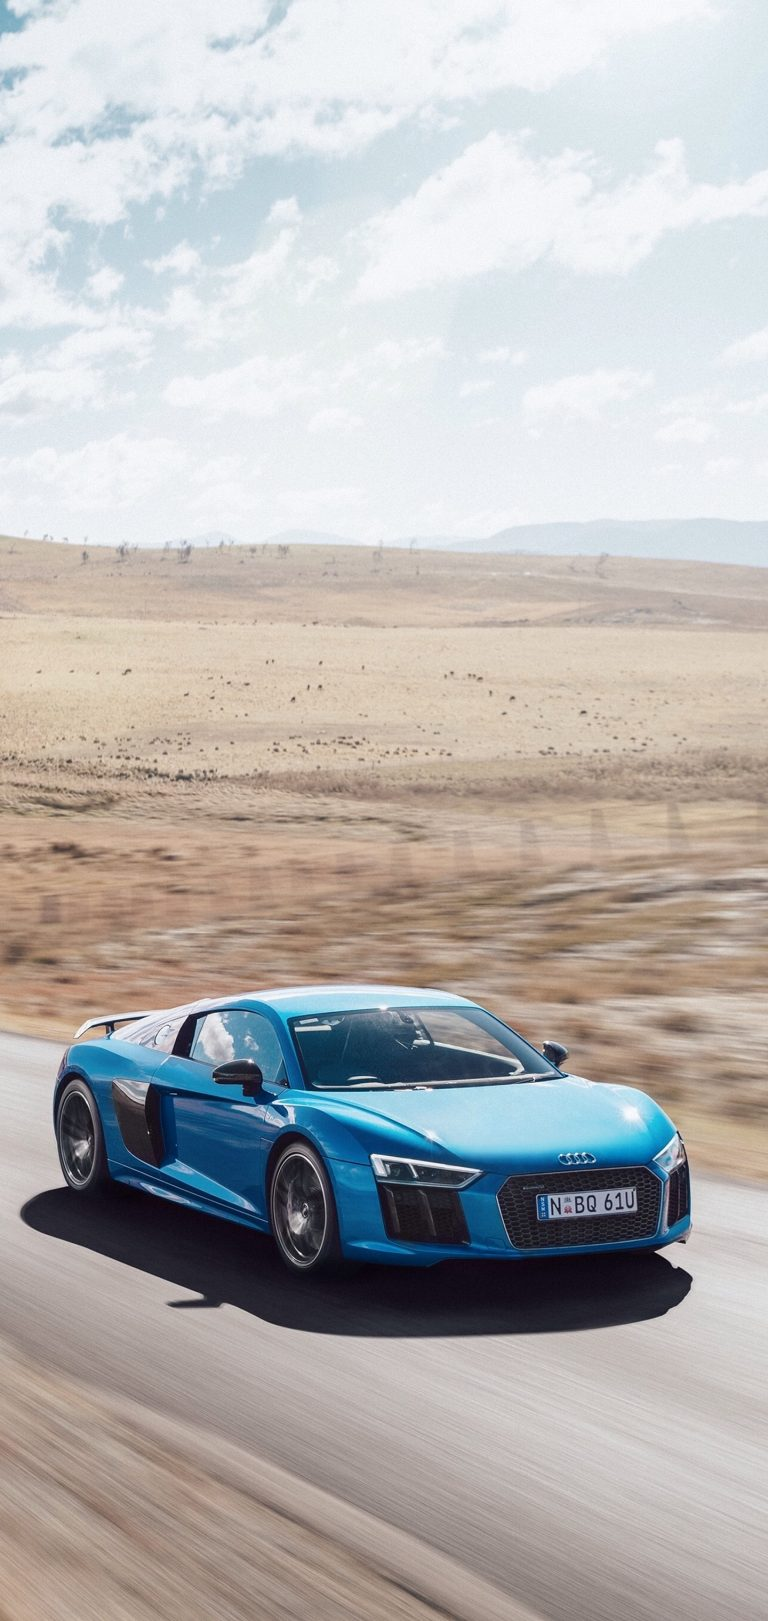 Audi R8 V10 Movement Road Wallpaper 1440x3040 768x1621